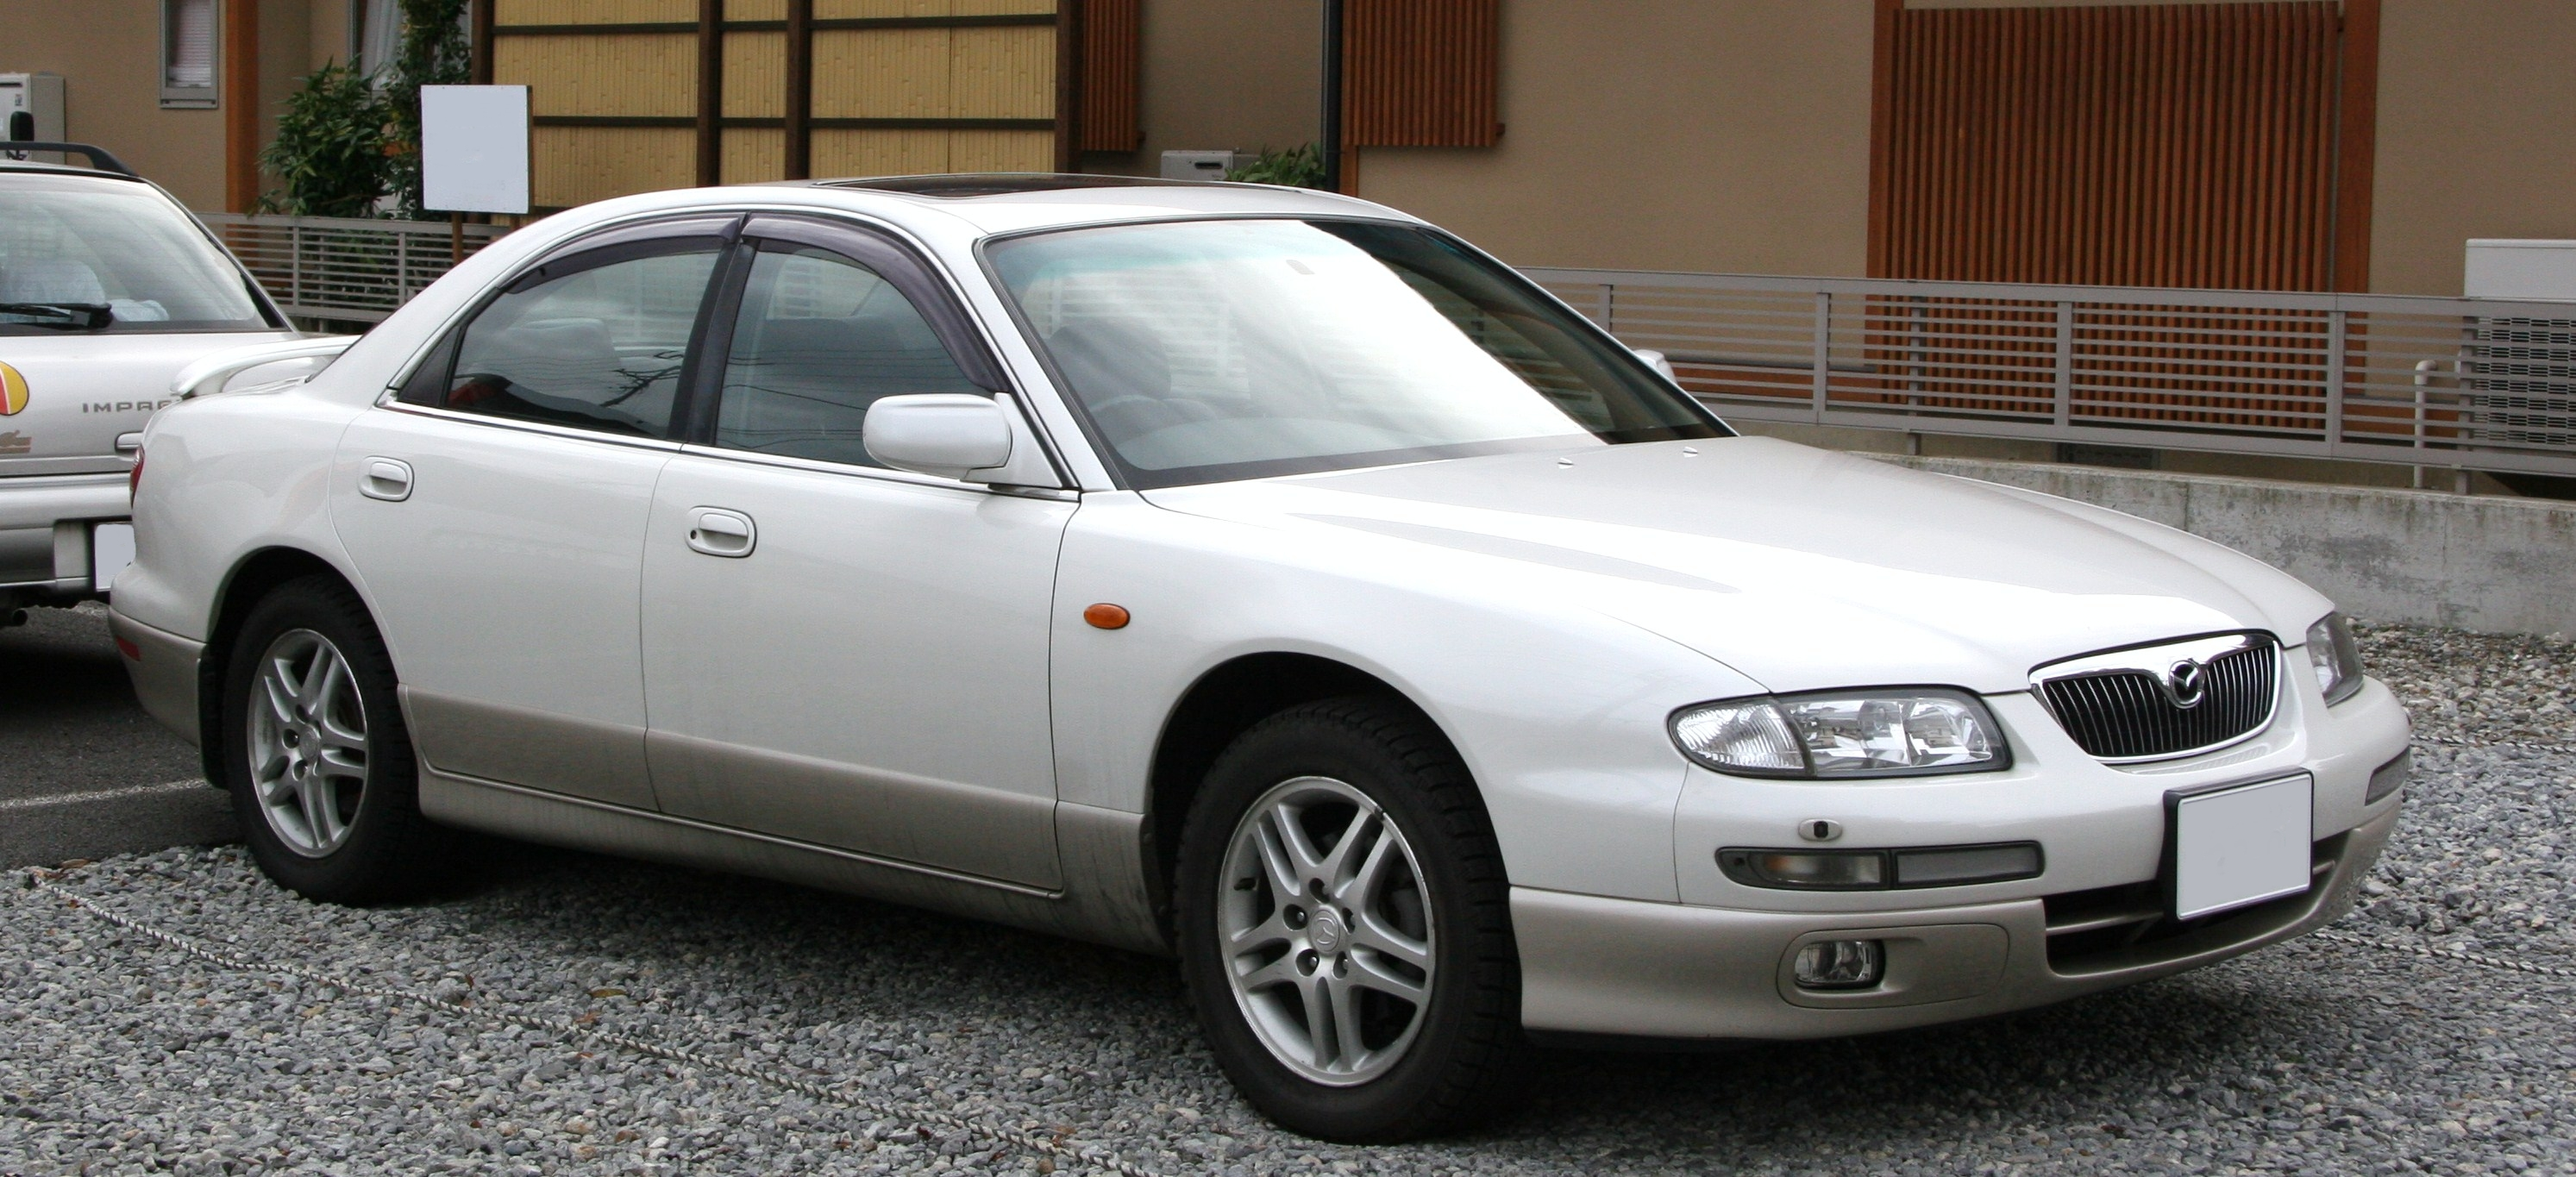 Mazda Millenia - WikipediaWikipedia, the free encyclopedia